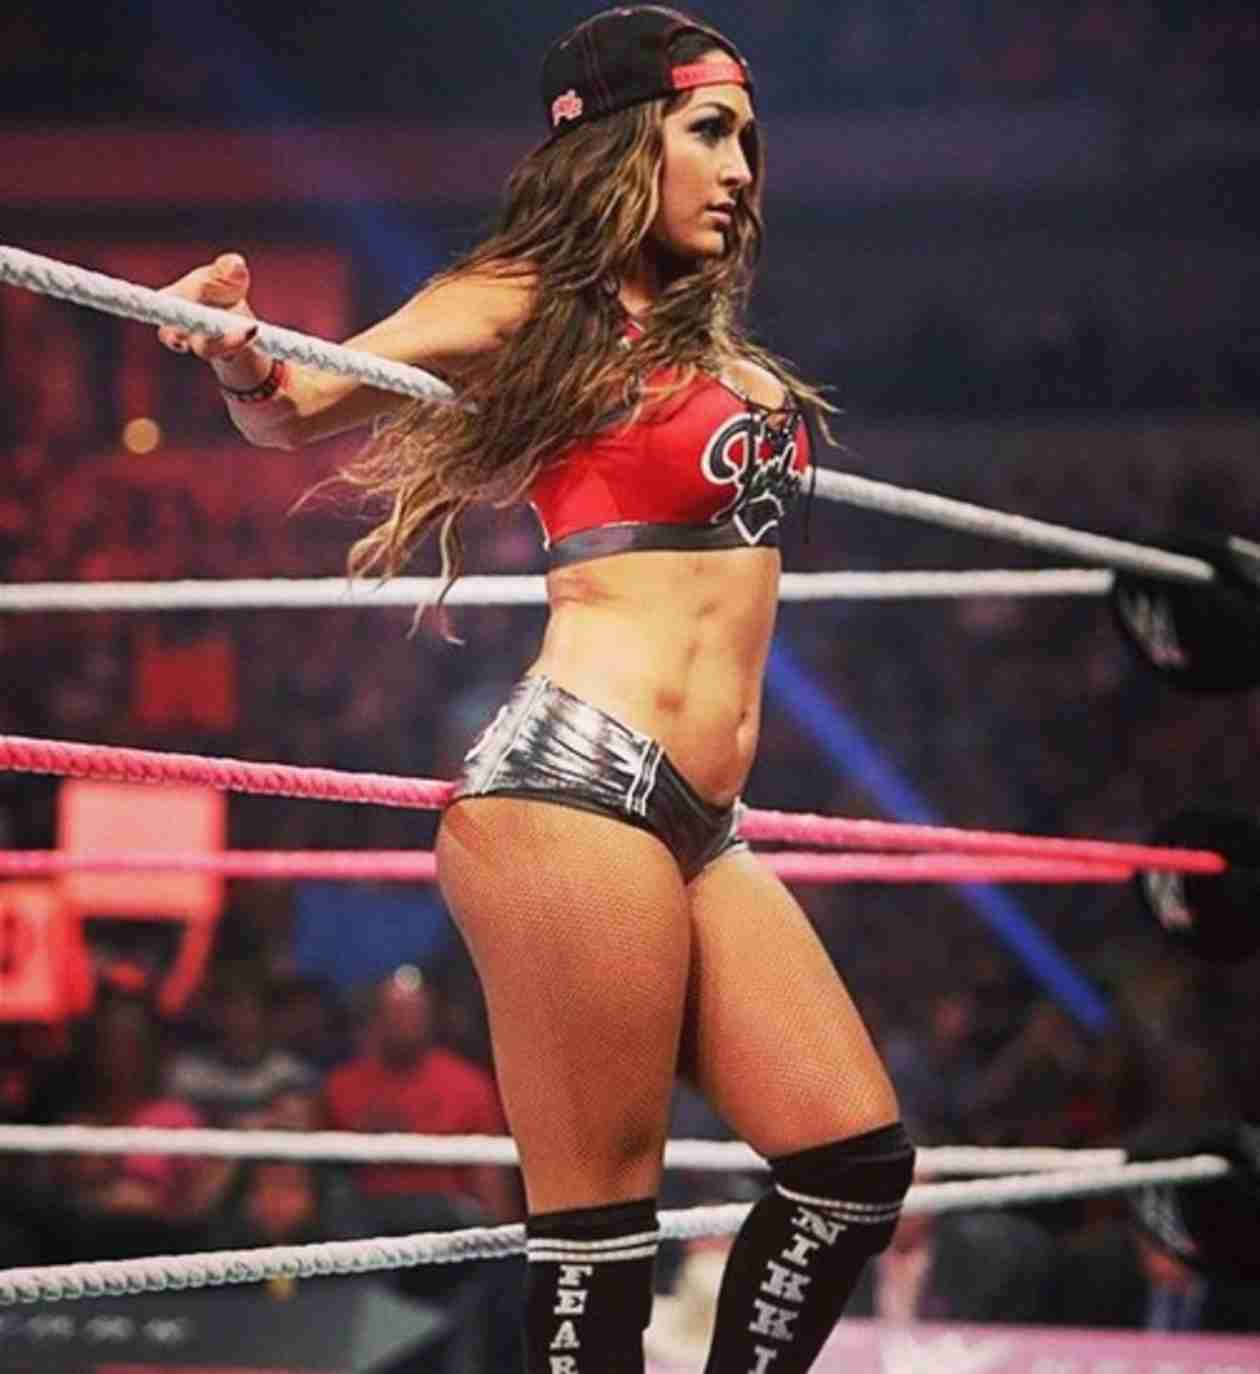 Wwe divas star nikki bella addresses her haters in - Diva nikki bella ...